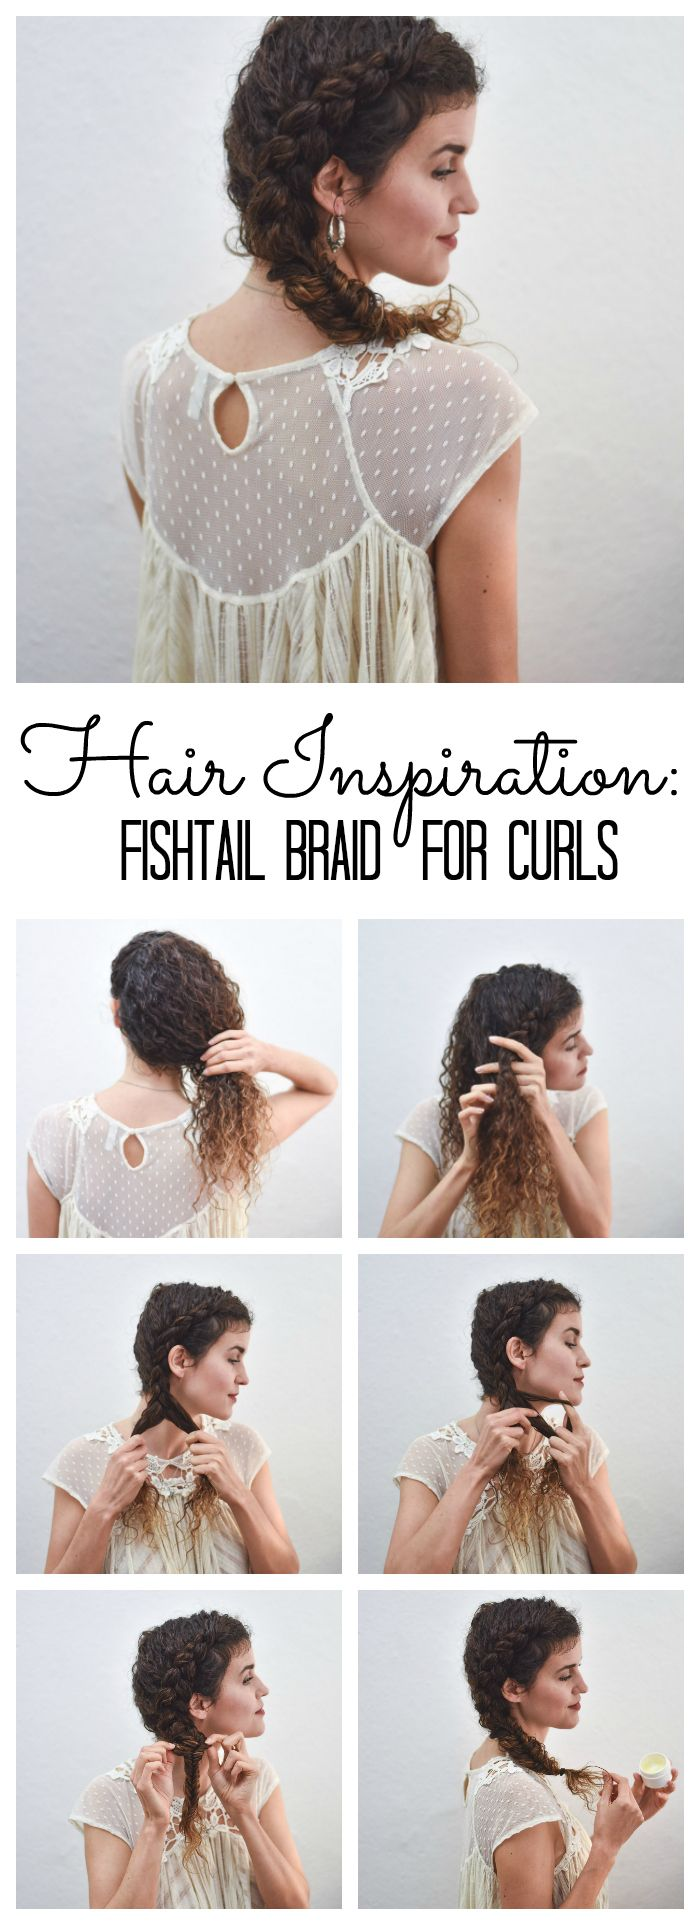 Best 25+ Easy curly hairstyles ideas on Pinterest | Naturally ...